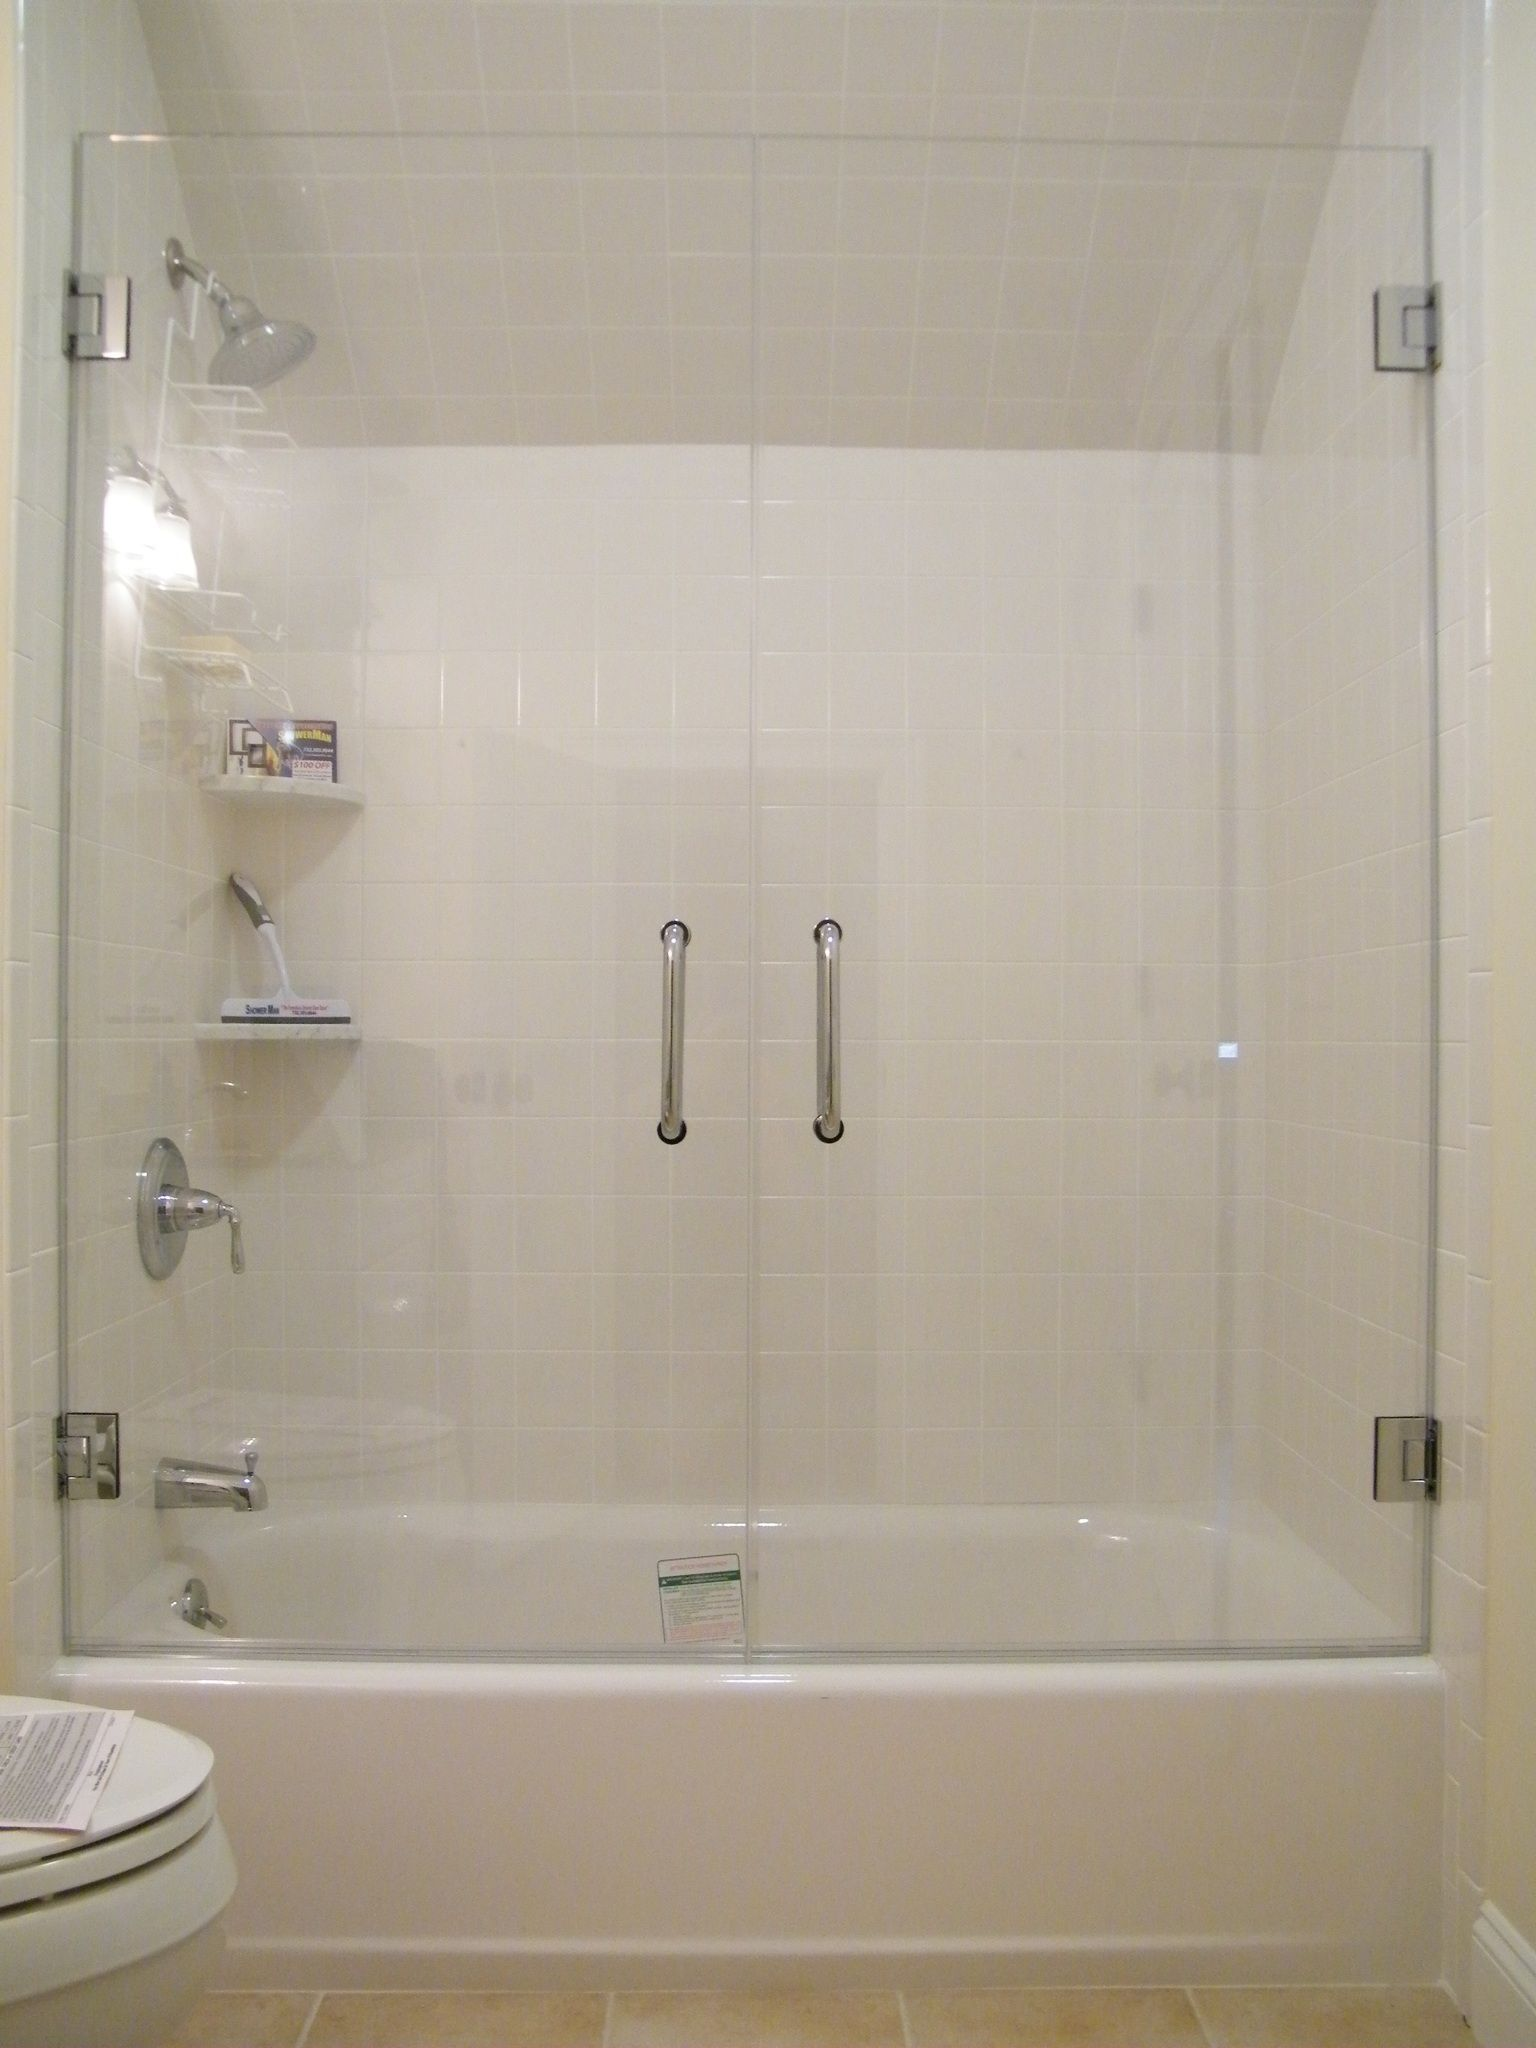 Bathroom shower doors frameless - Frameless Glass Tub Enclosure Framless Glass Doors On Your Bath Tub Can Be Designed And